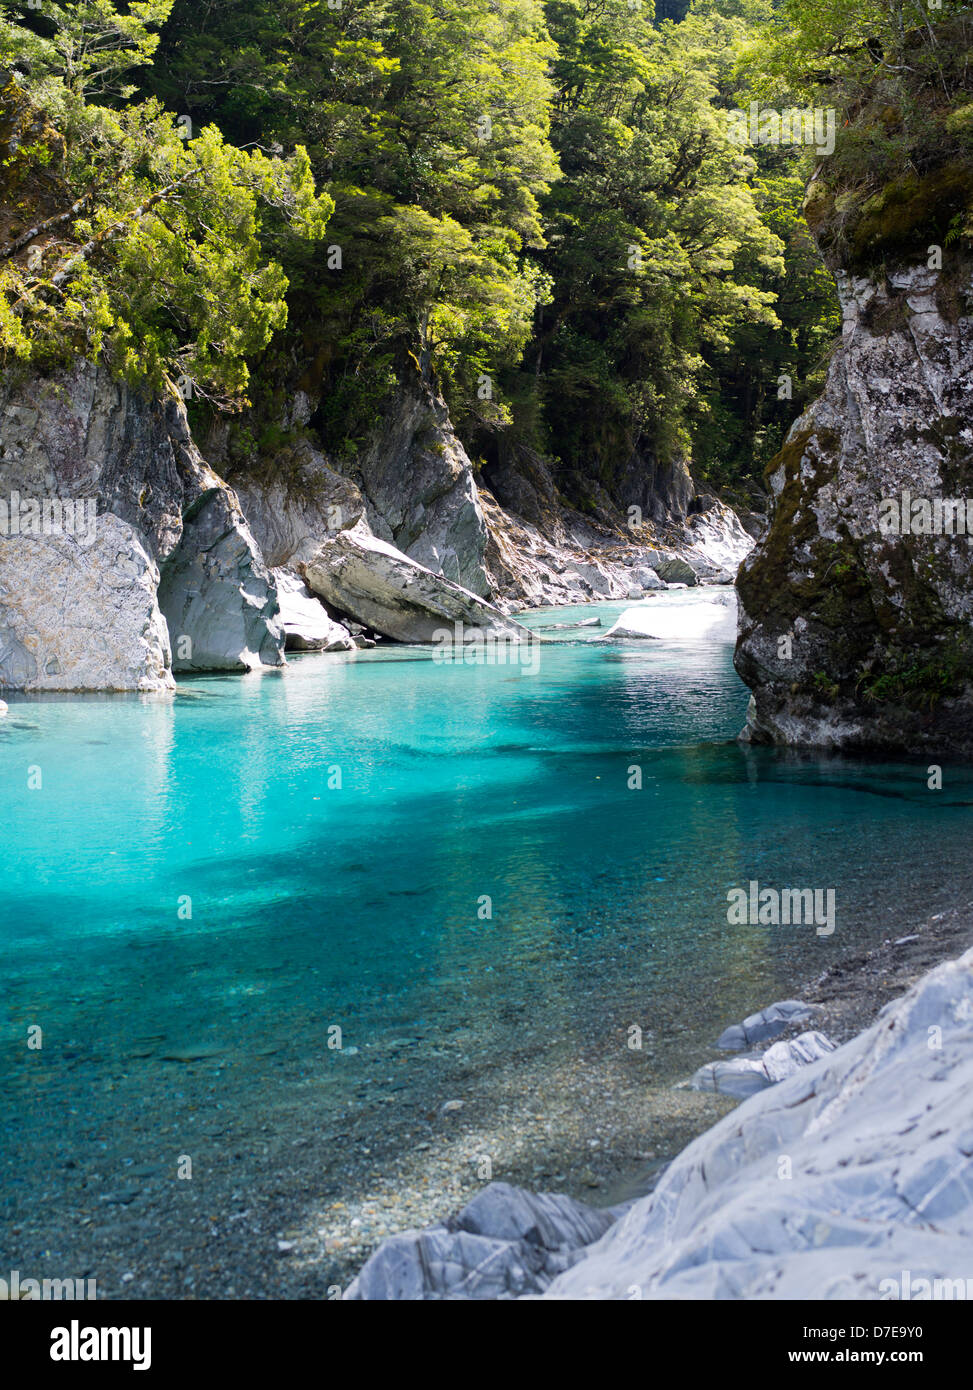 view of the blue pools and makarora river, southern alps, otago